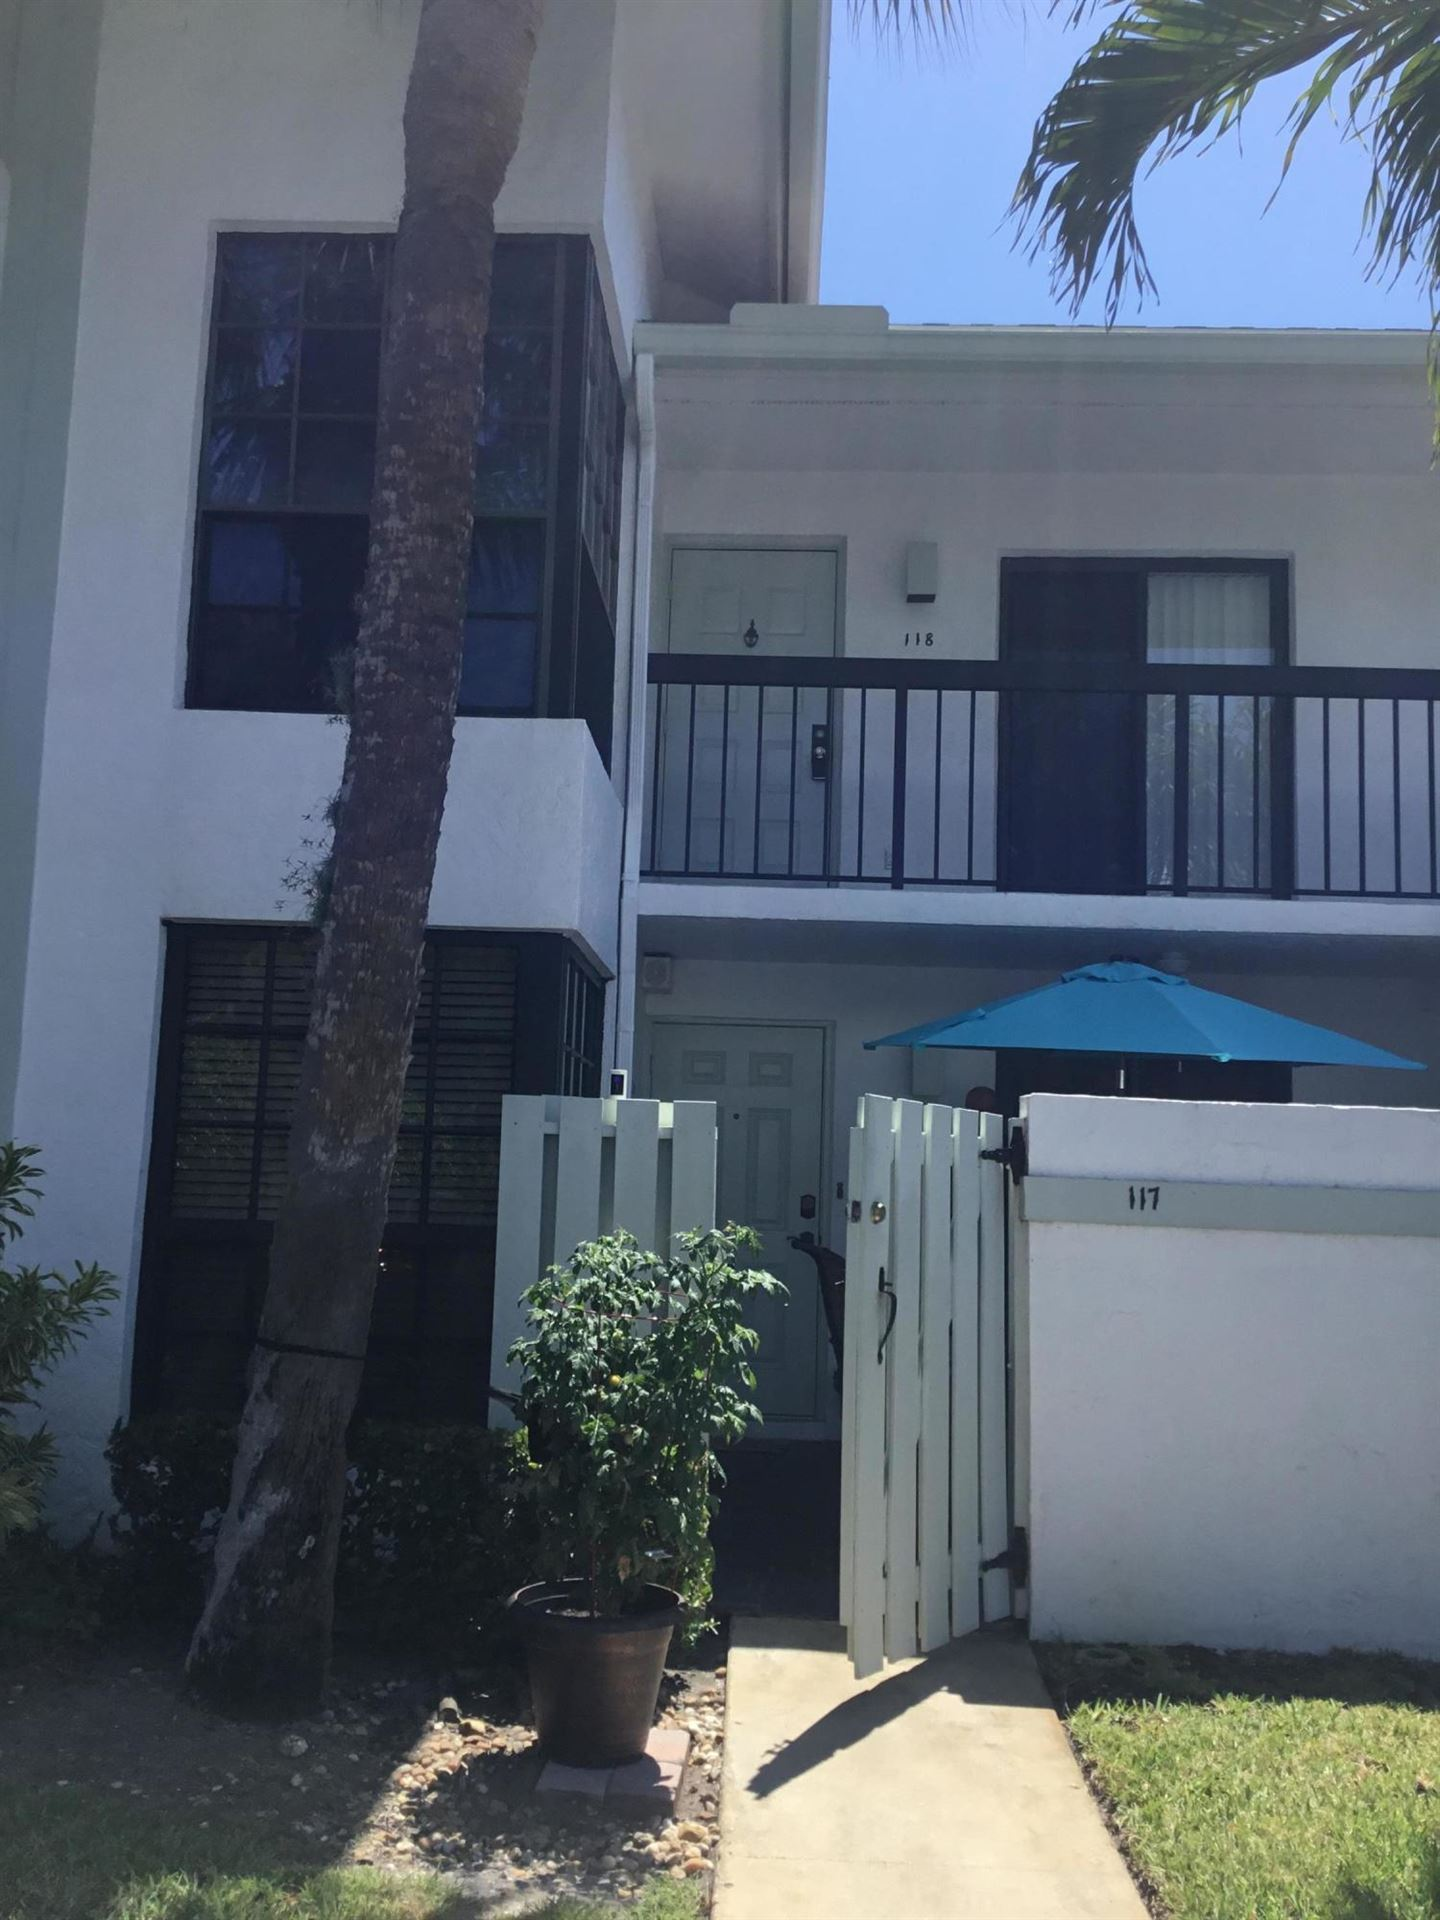 Photo of 1405 S Federal Highway #118, Delray Beach, FL 33483 (MLS # RX-10715445)